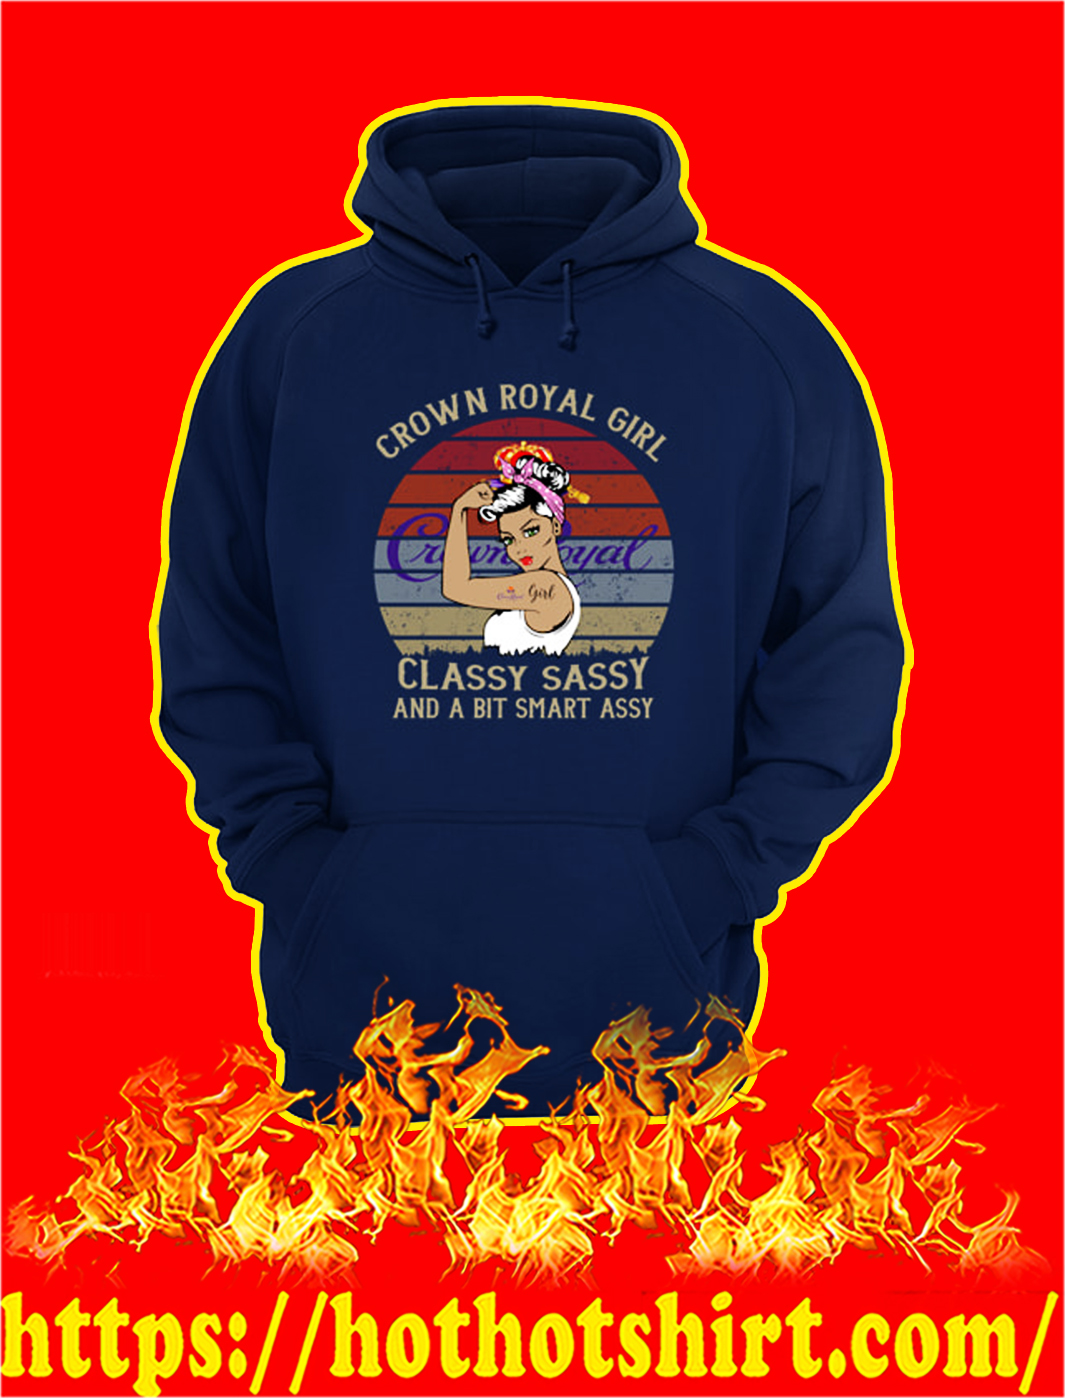 Crown royal girl classy sassy and a bit smart assy hoodie